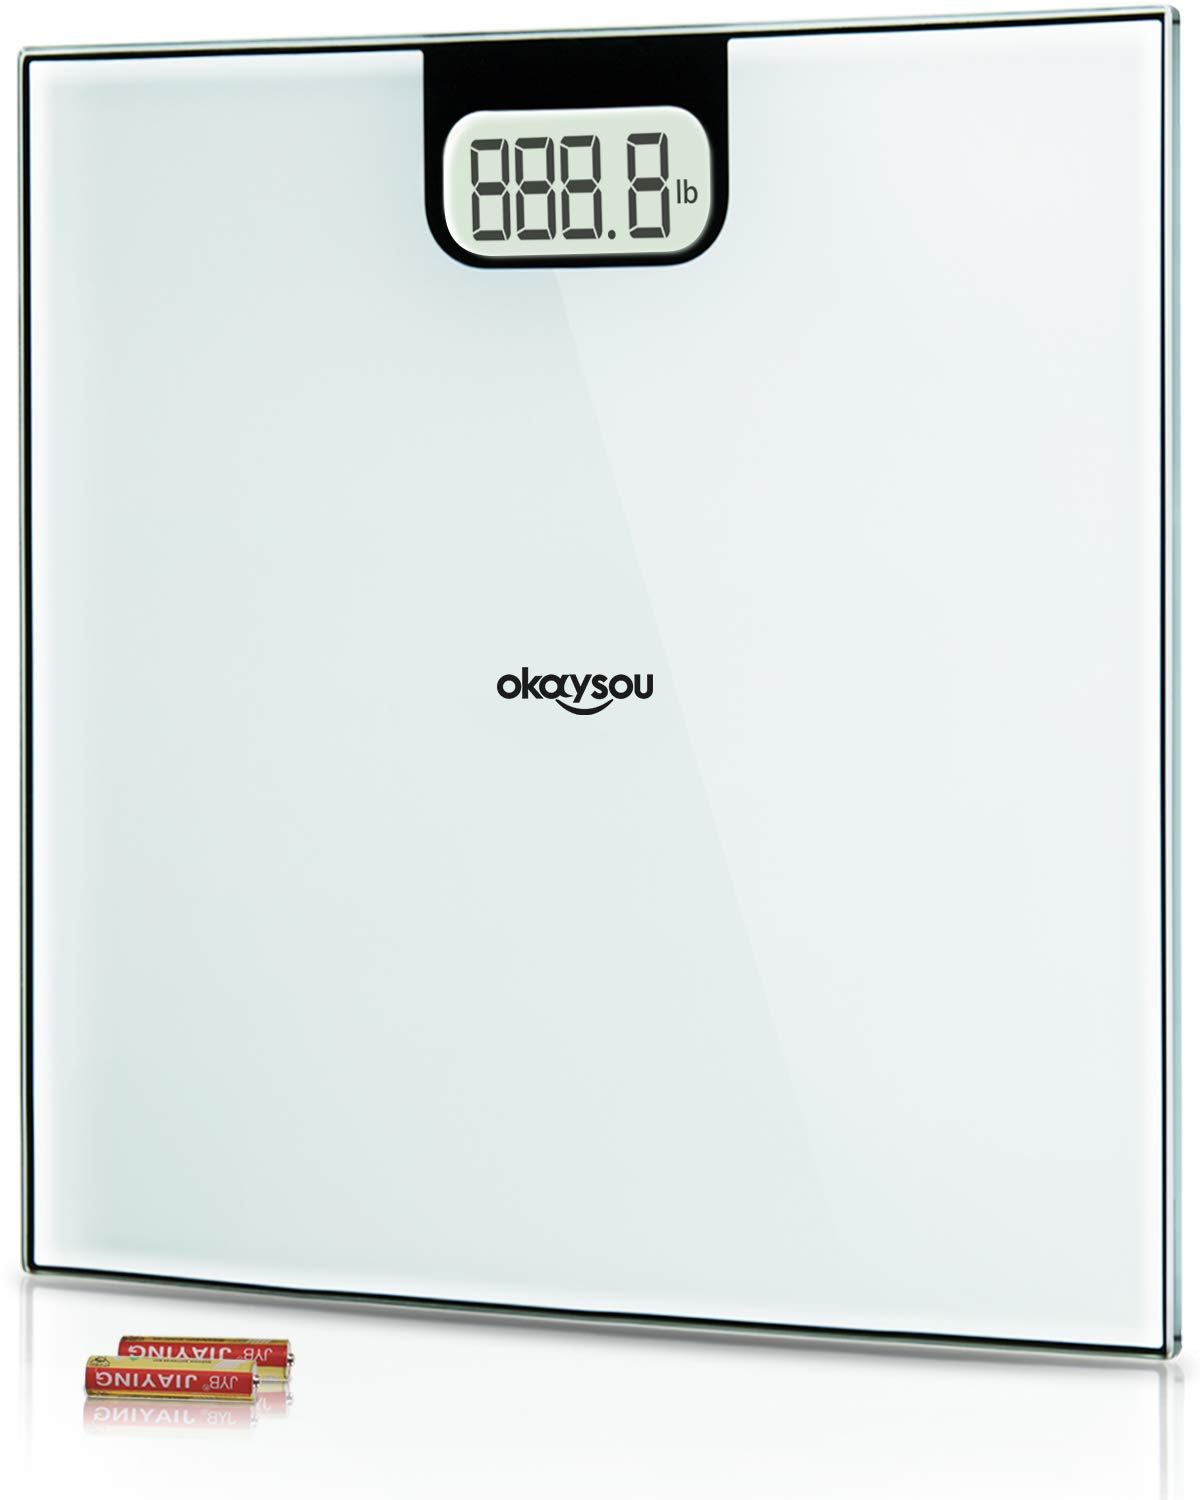 Okaysou All-New Bathroom Scale, Accurate Digital Body Weight Scale with Large 3.6'' Backlit LCD Display, Step-On Technology, 400 Pound Capacity